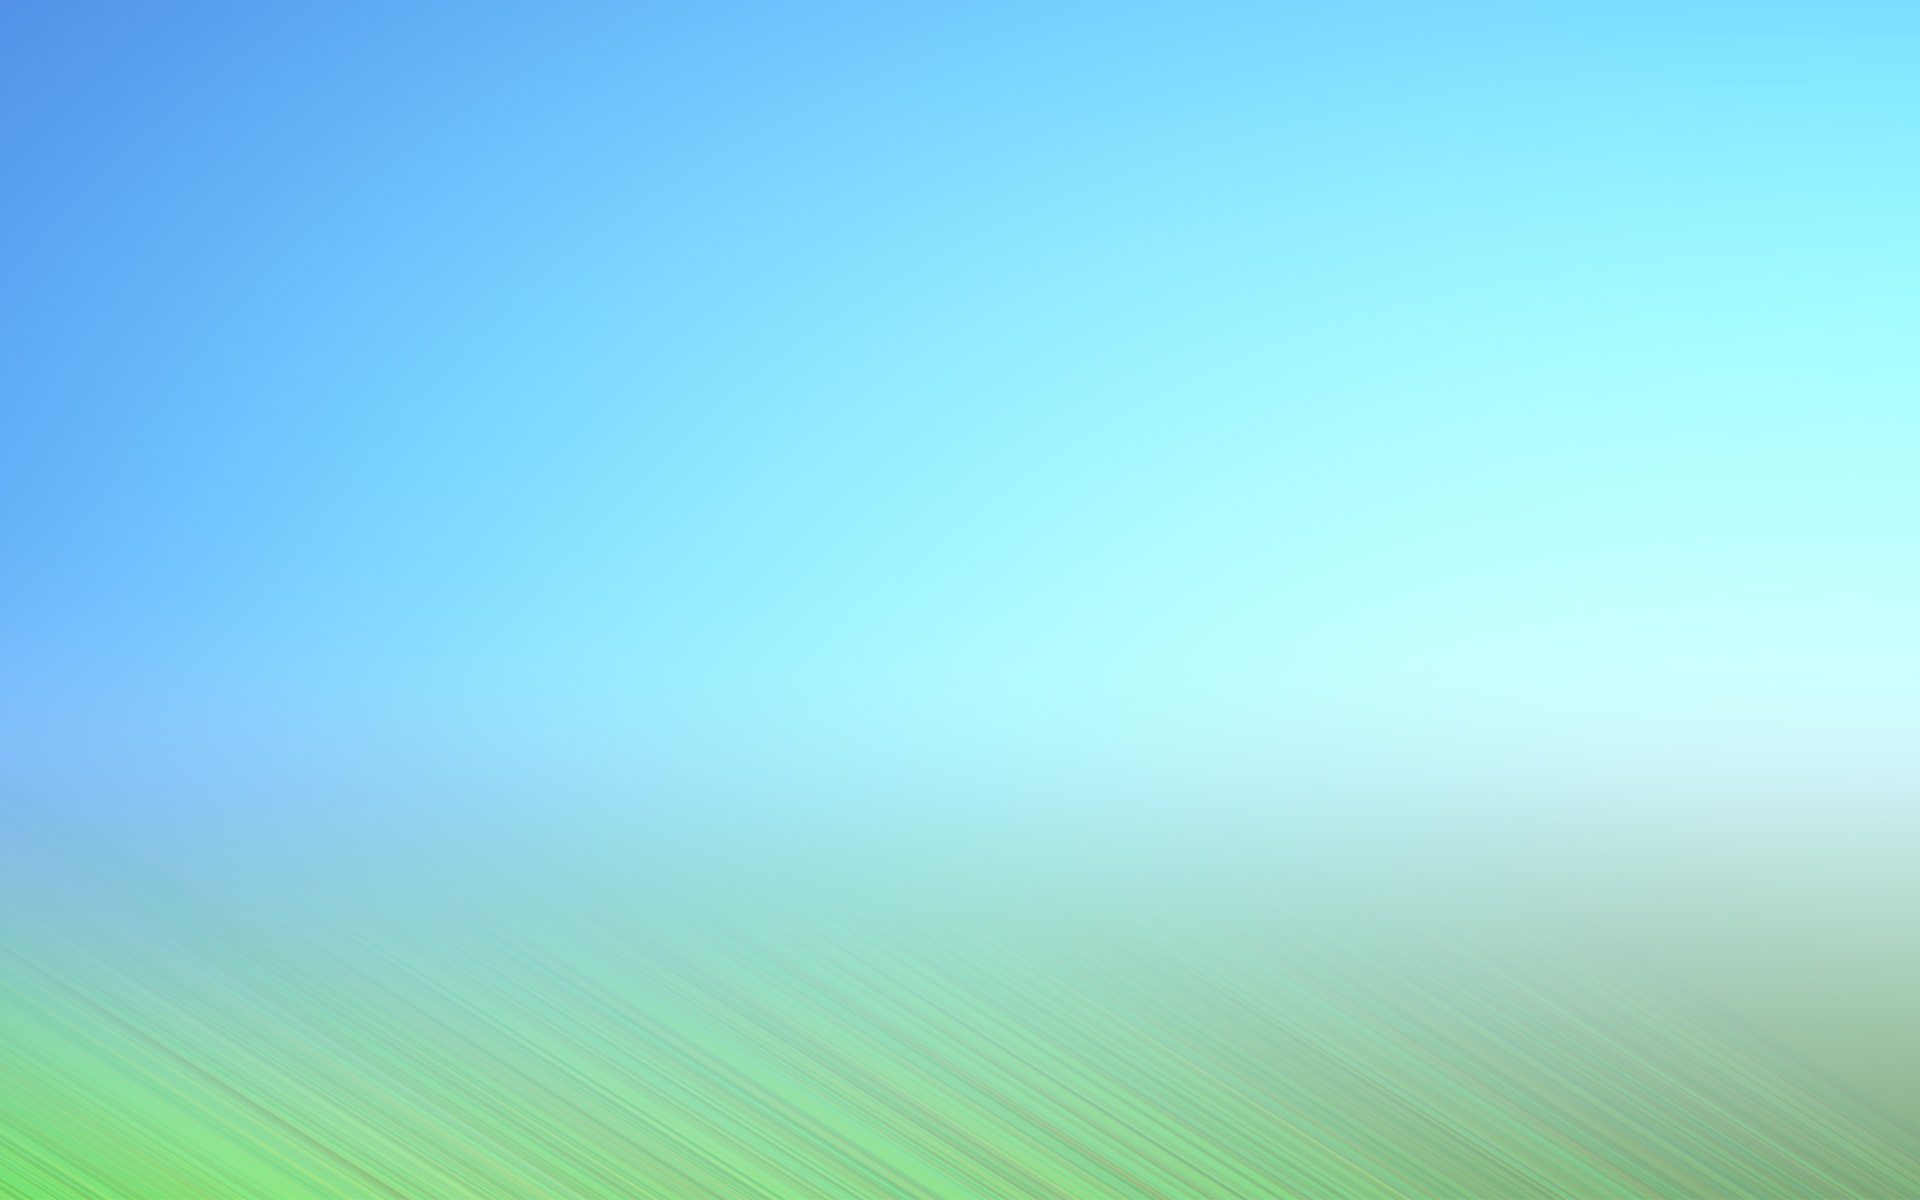 greenish blue wallpaper - photo #15